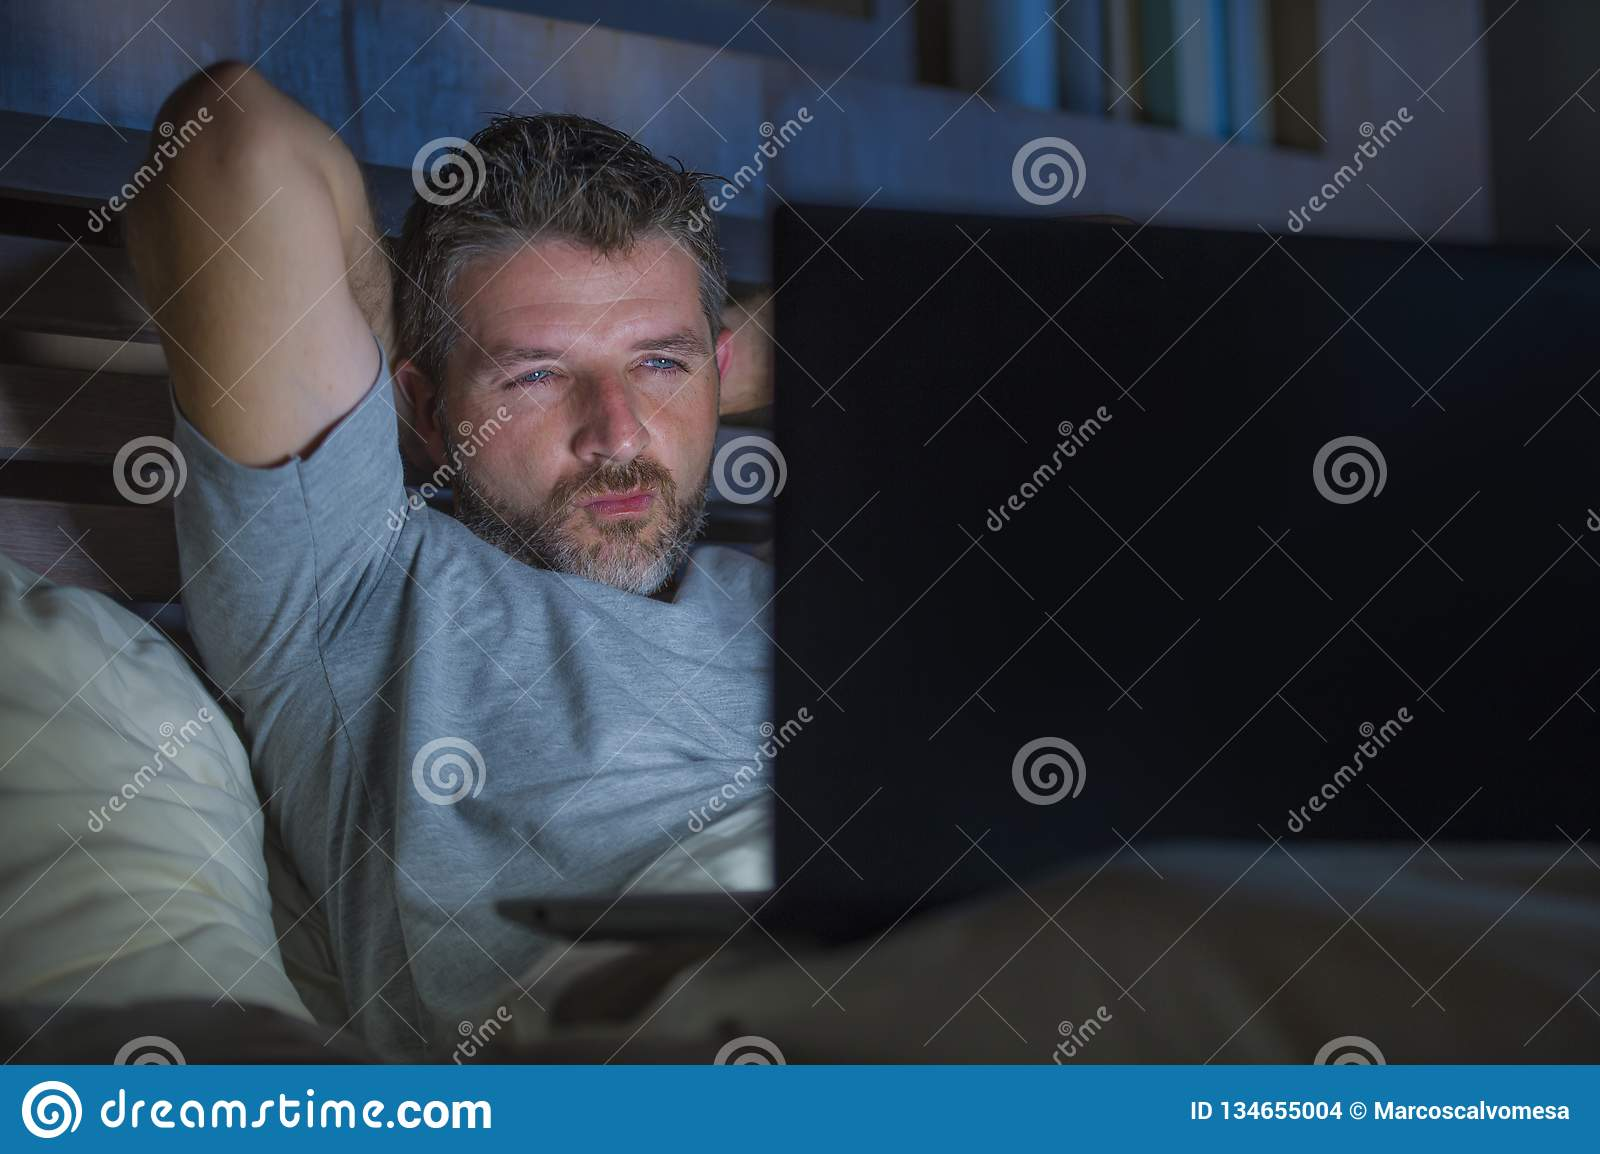 Man alone in bed playing cybersex using laptop computer watching sex movie late at night with lascivious pervert face